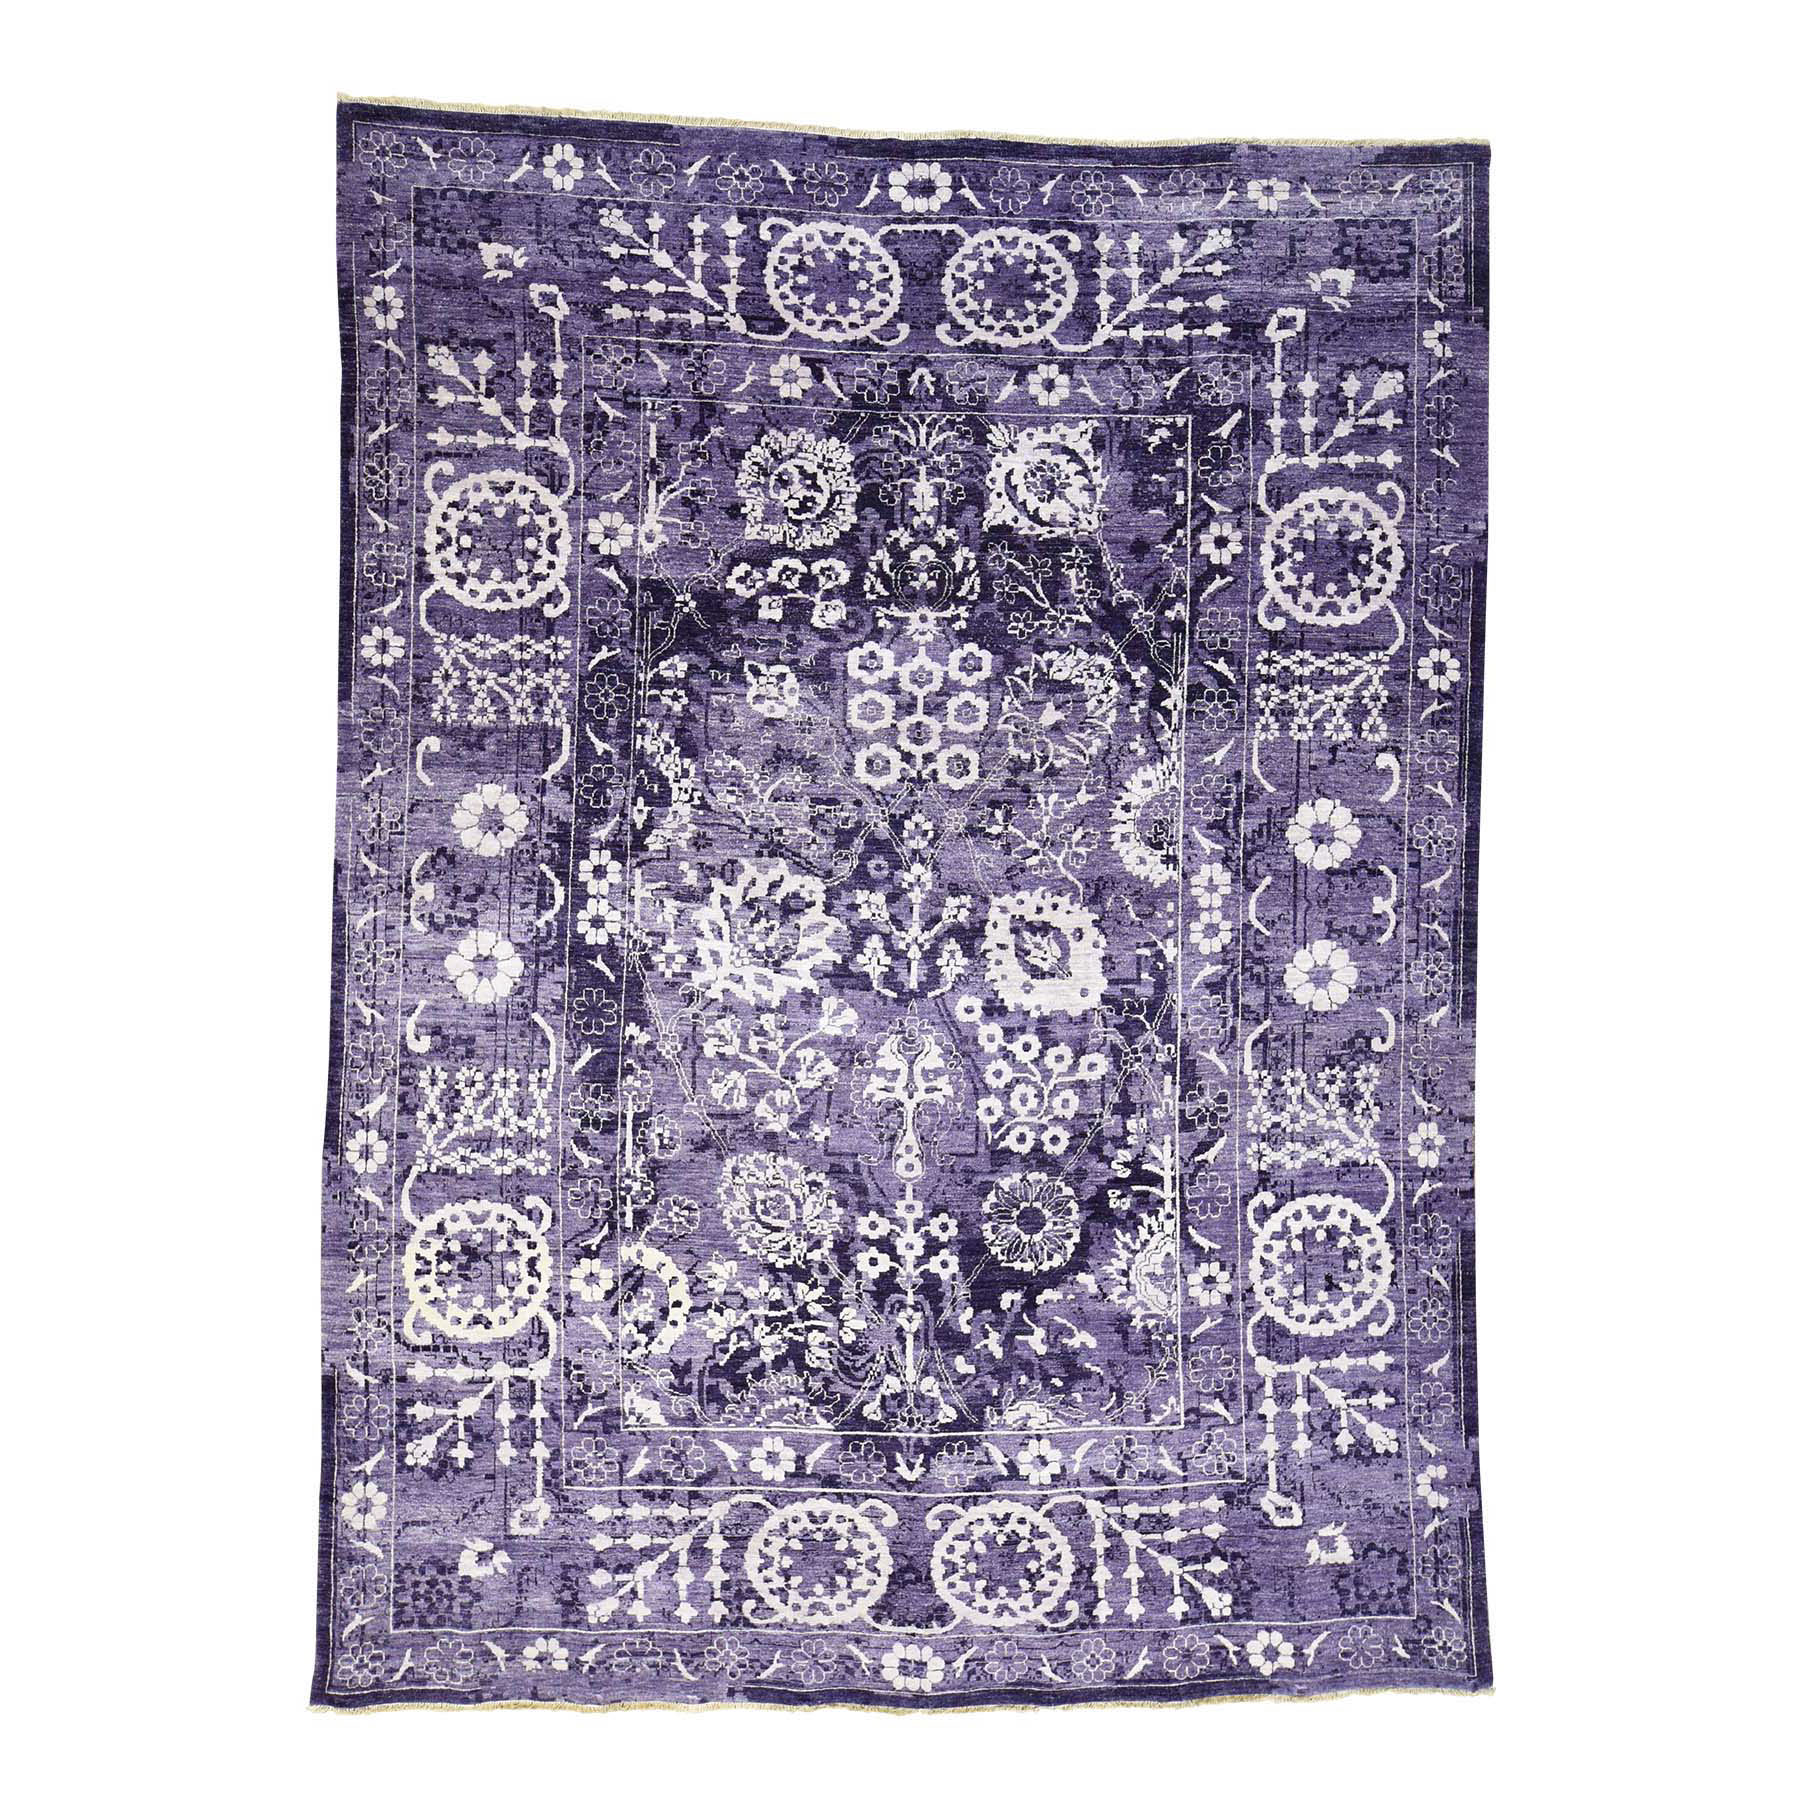 9'X12' Purple Wool And Silk Hand-Knotted Tone On Tone Tabriz Rug moac7eb9